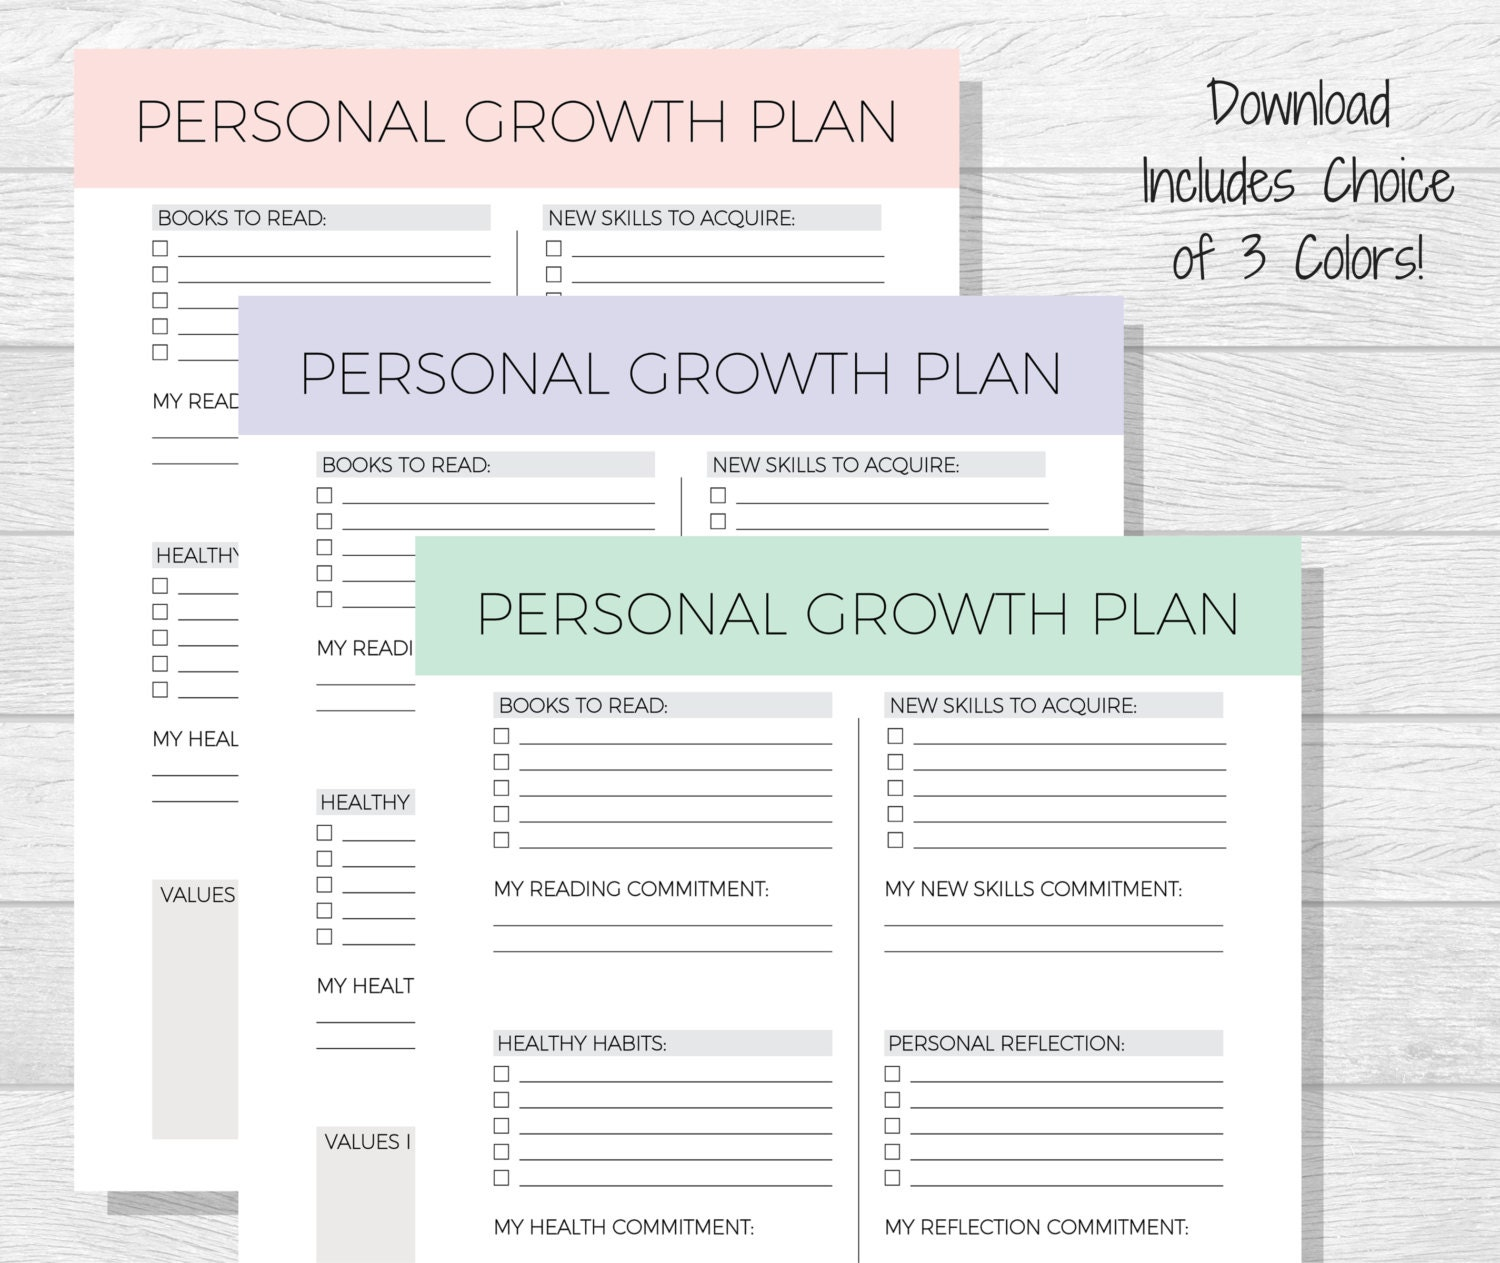 personal plan worksheet Myfinanceplans personal financial plan spreadsheet templates enable you to plan and track your finances including income, expense, cash flow, savings and net worth.